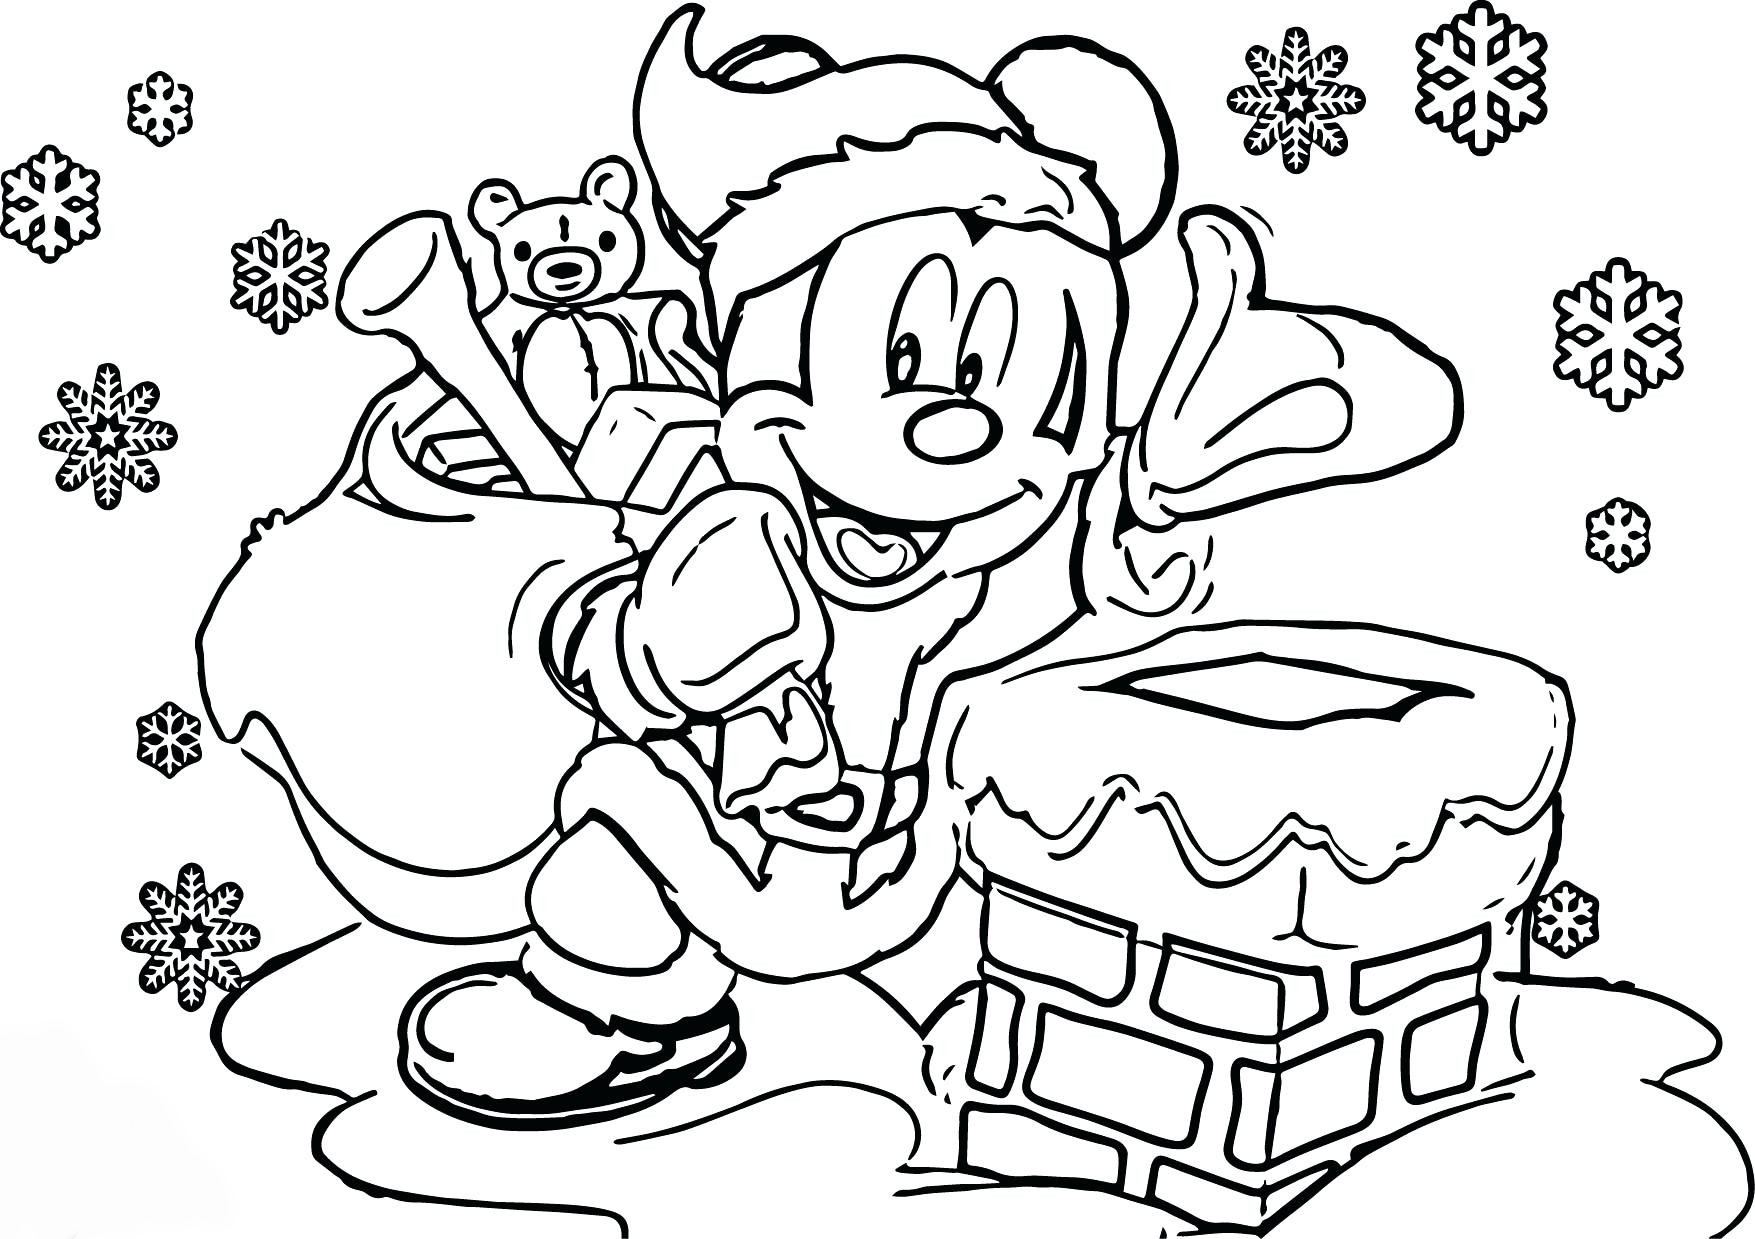 Mickey Mouse Christmas Coloring Pages - Best Coloring ...